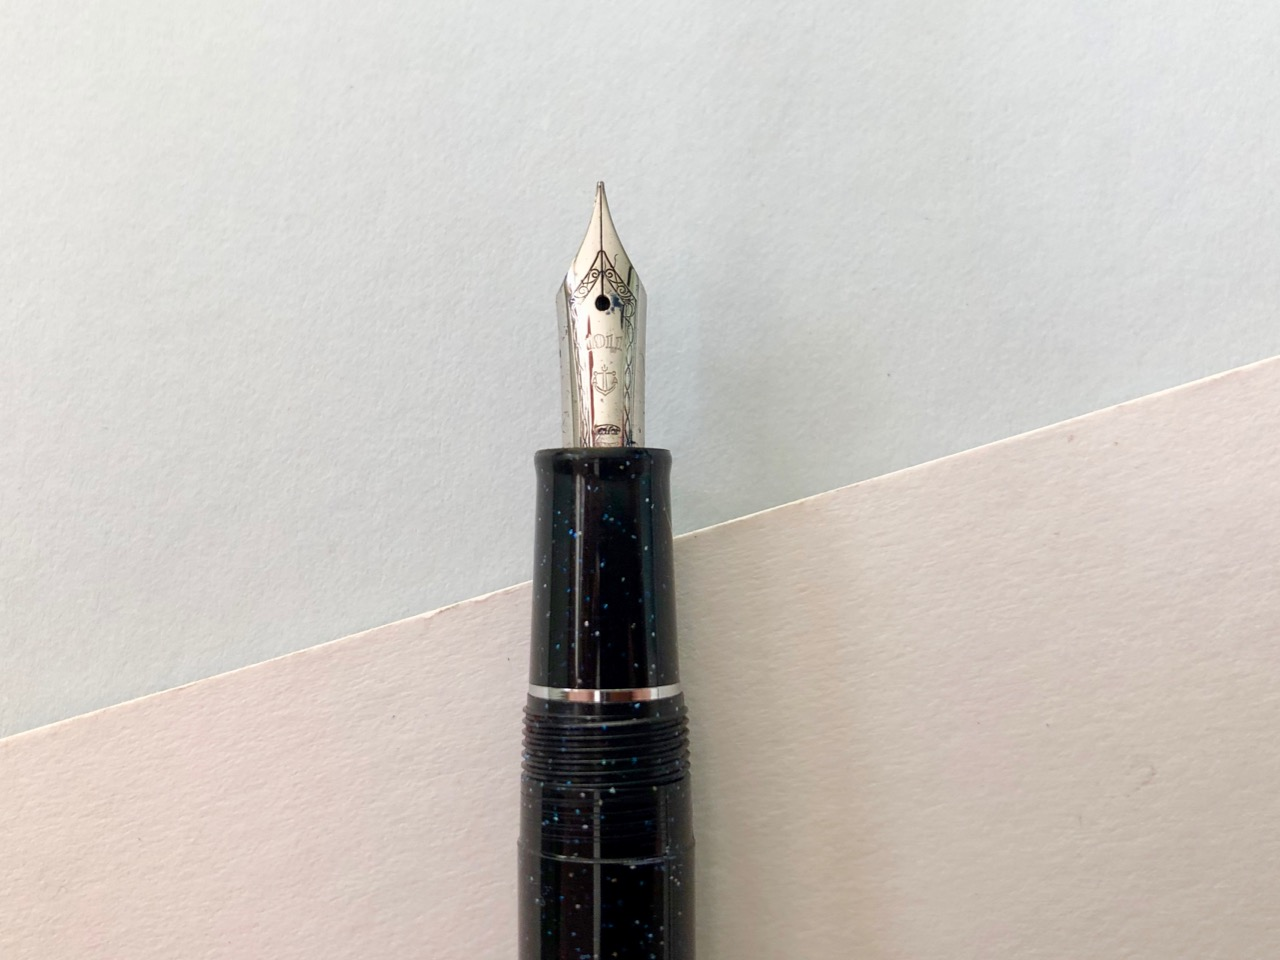 Sailor flourishes on the nib